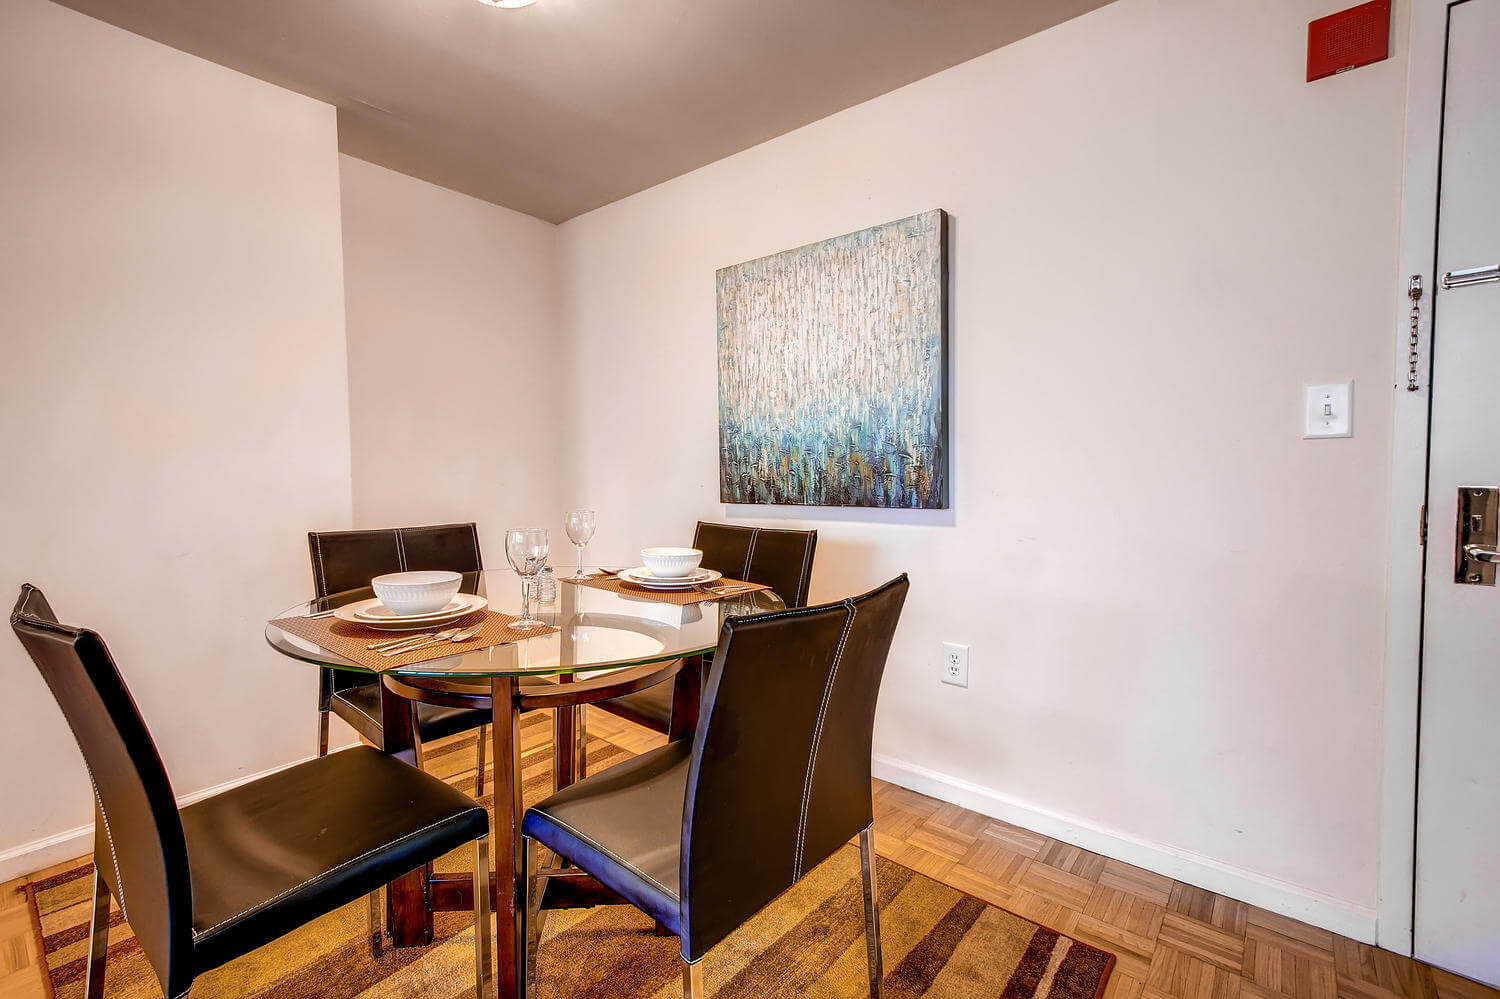 Hoboken furnished 2 bedroom apartment for rent 7980 per - 2 bedroom apartments in hoboken nj ...